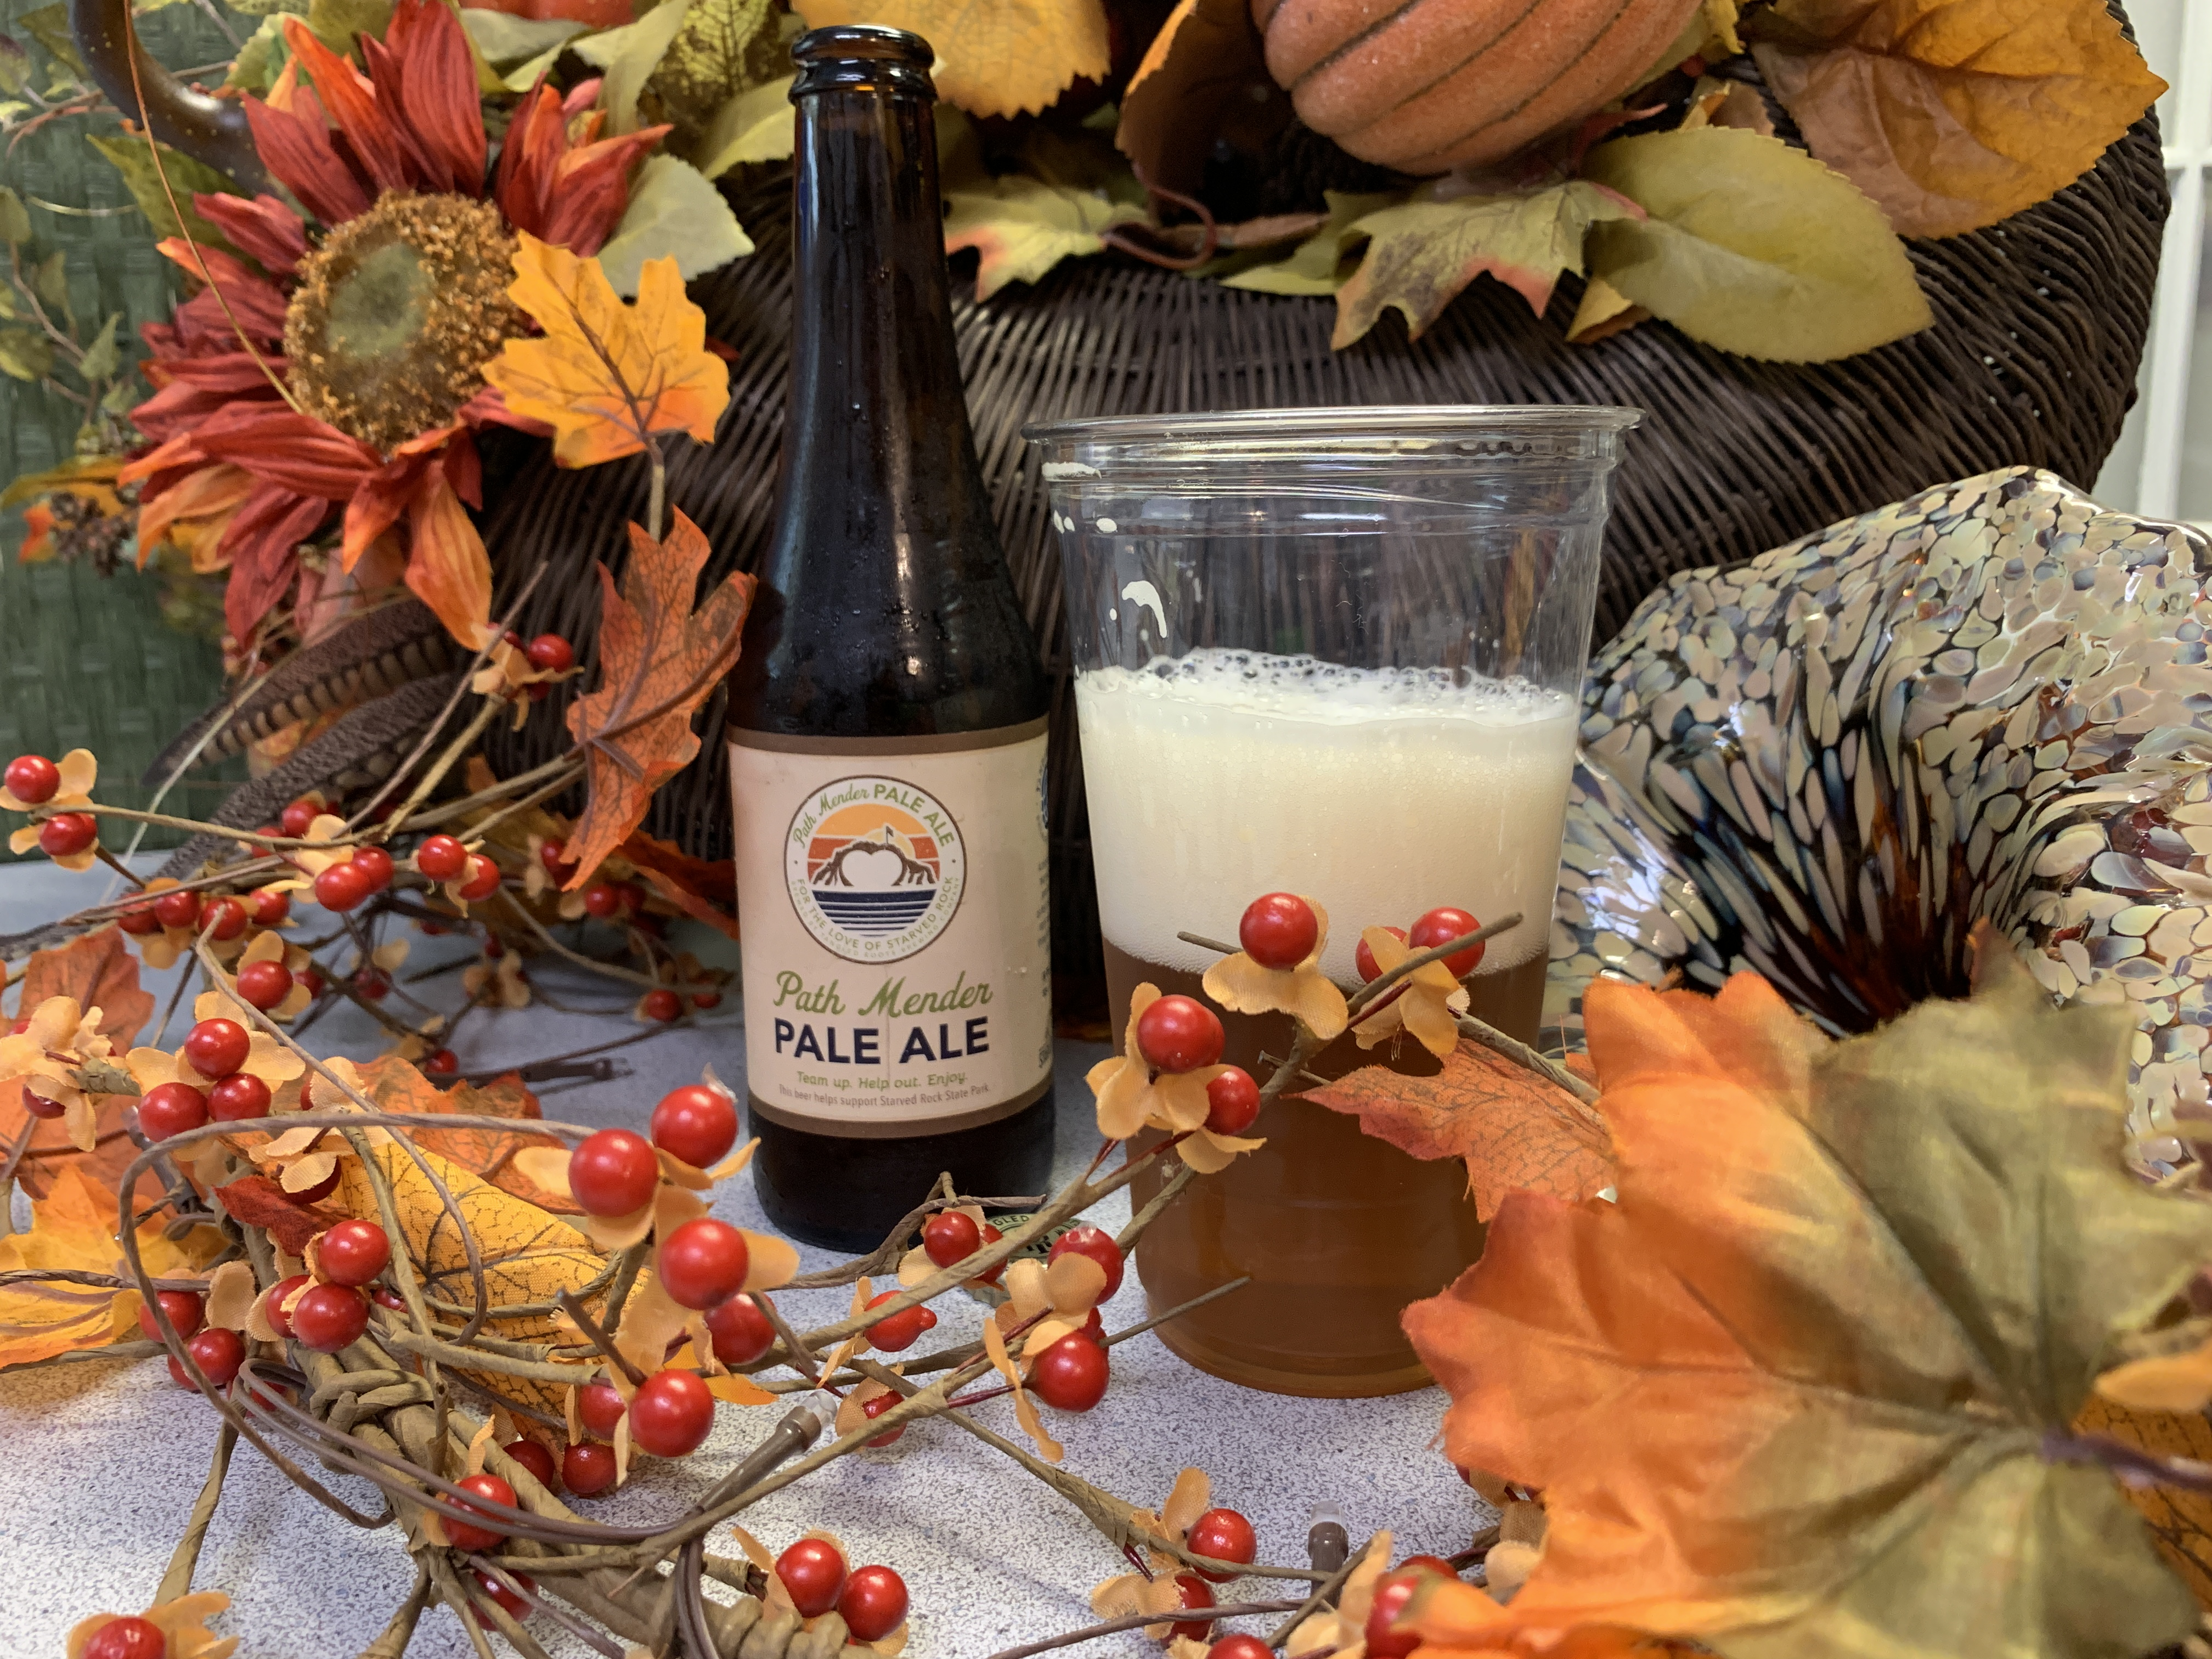 Path Mender bottle of beer next to a cup of the beer, surrounded by fall decor